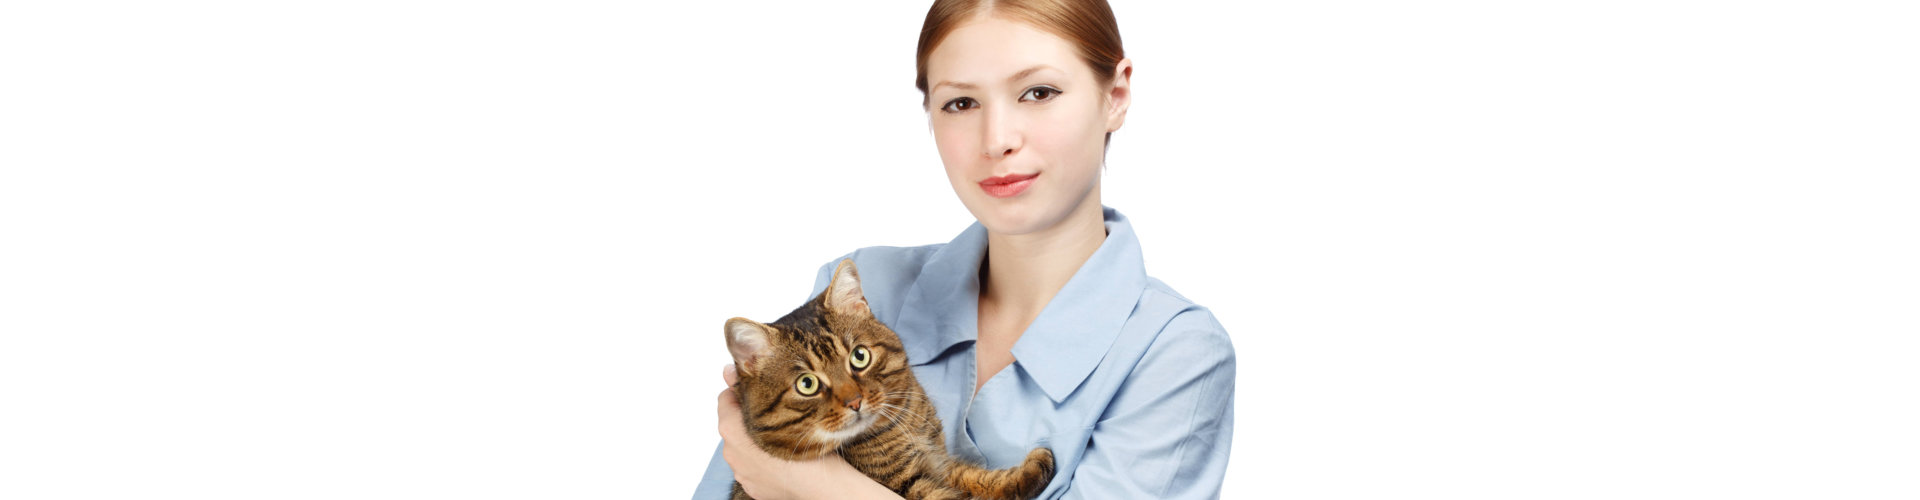 lady holding a cat